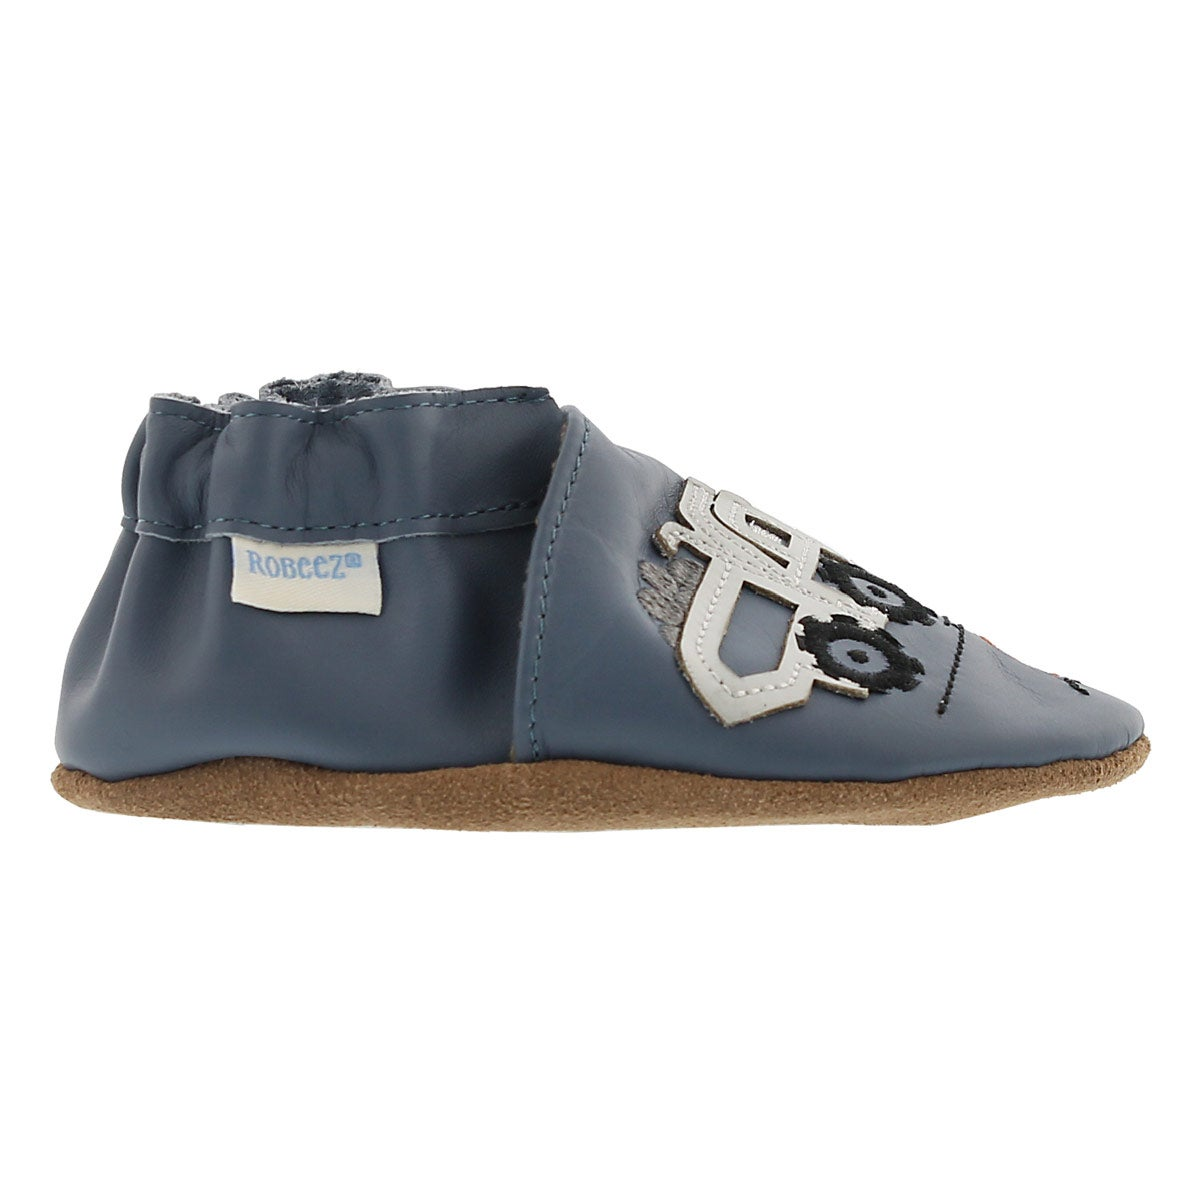 Inf Little Dump Truck blue slipper